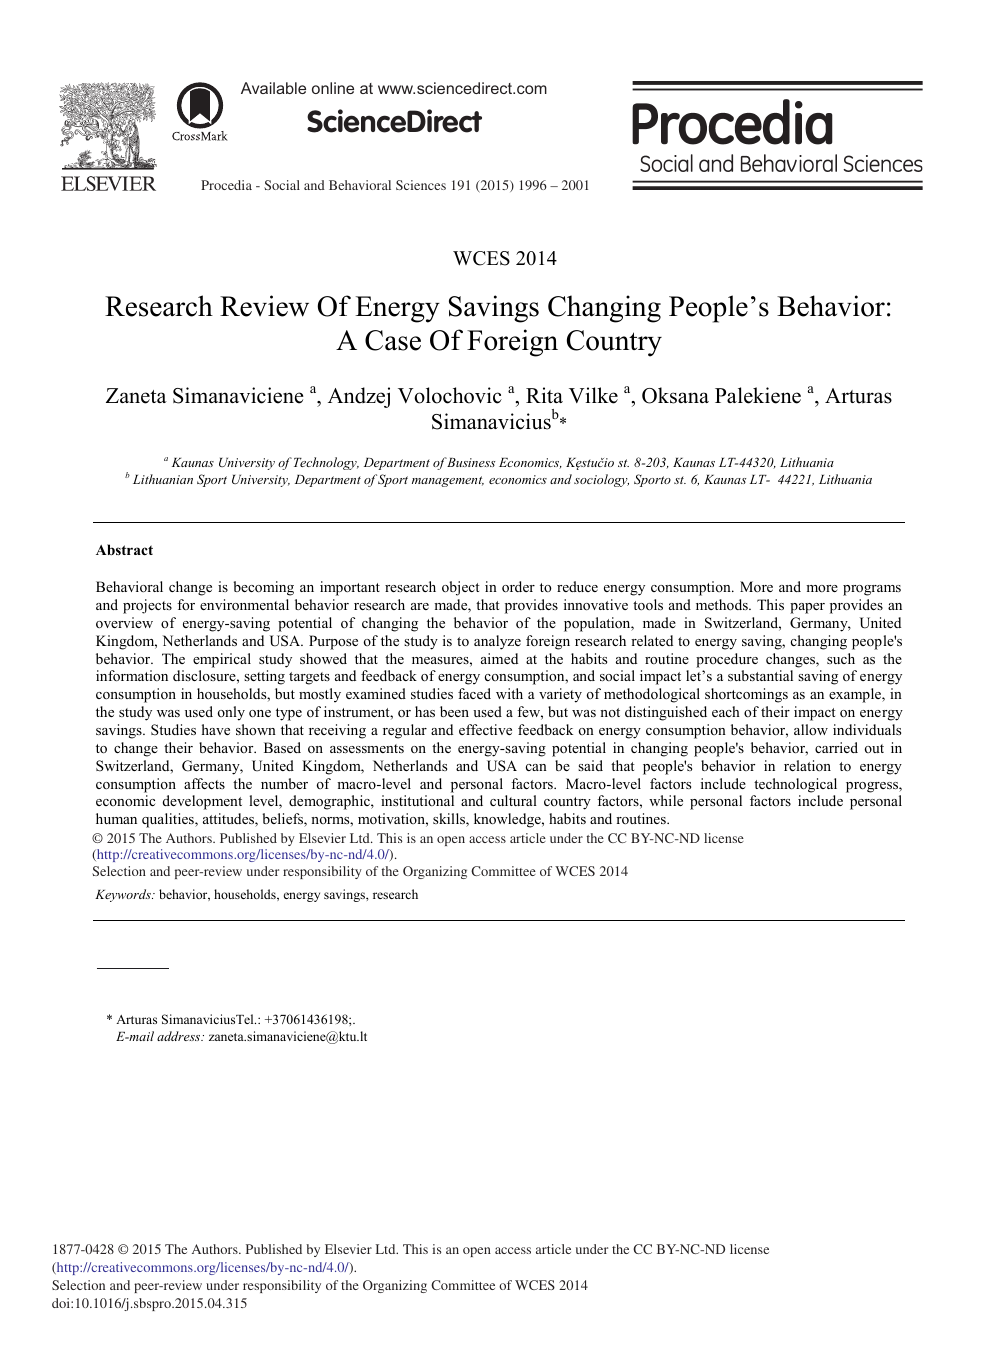 Research Review of Energy Savings Changing People's Behavior